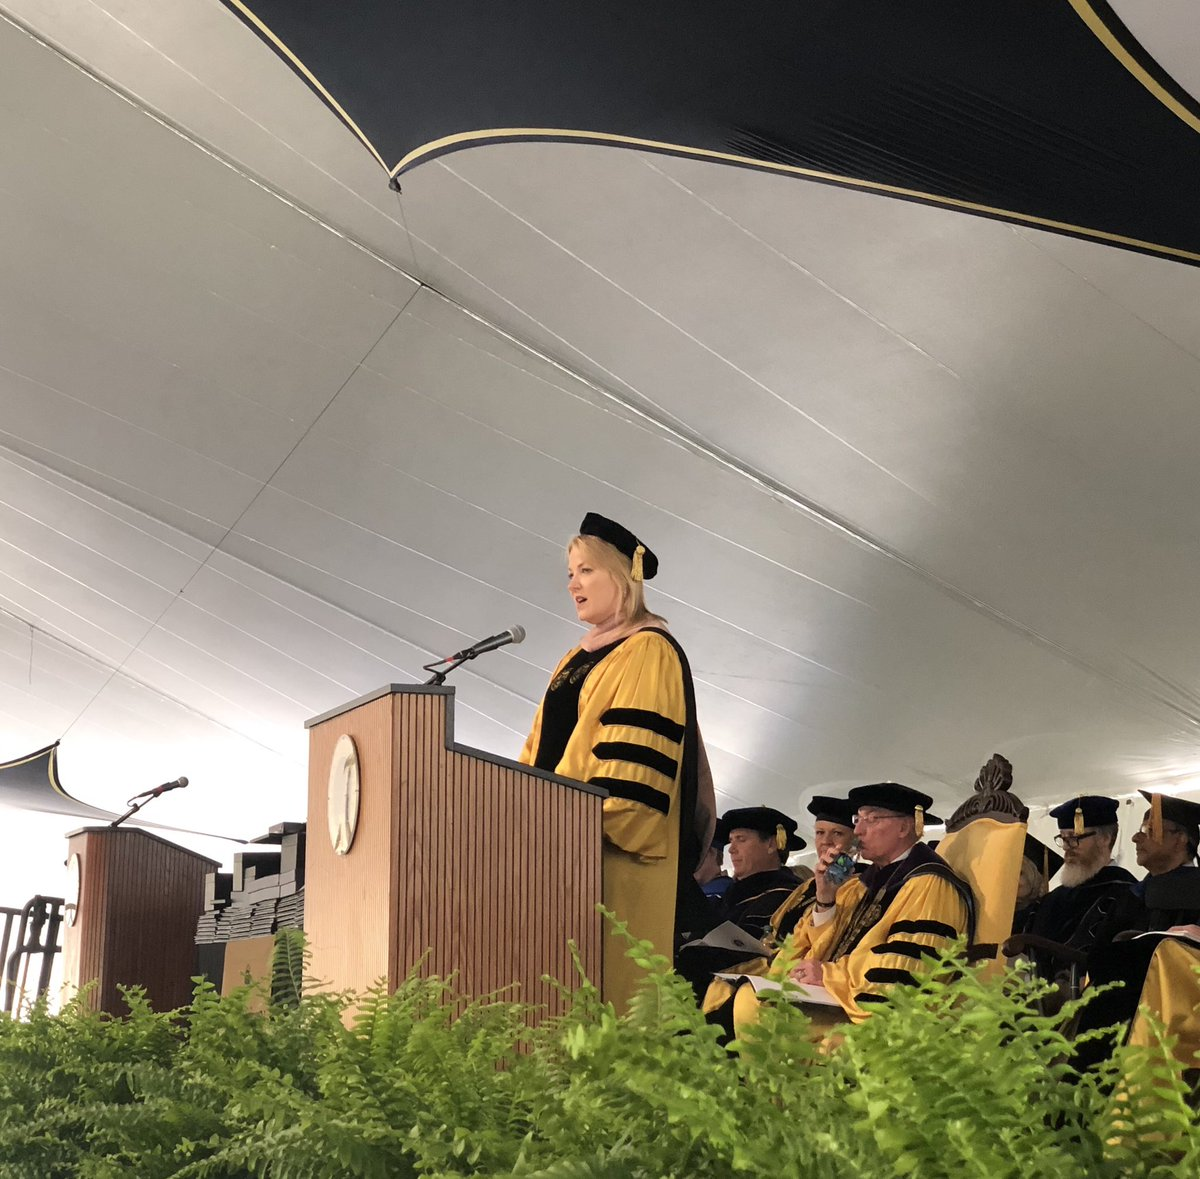 Honorary degree recipient and @EllucianInc CEO @IpsenLaura gives the commencement address at Bryant's Undergraduate Commencement.  #BryantGrad2019